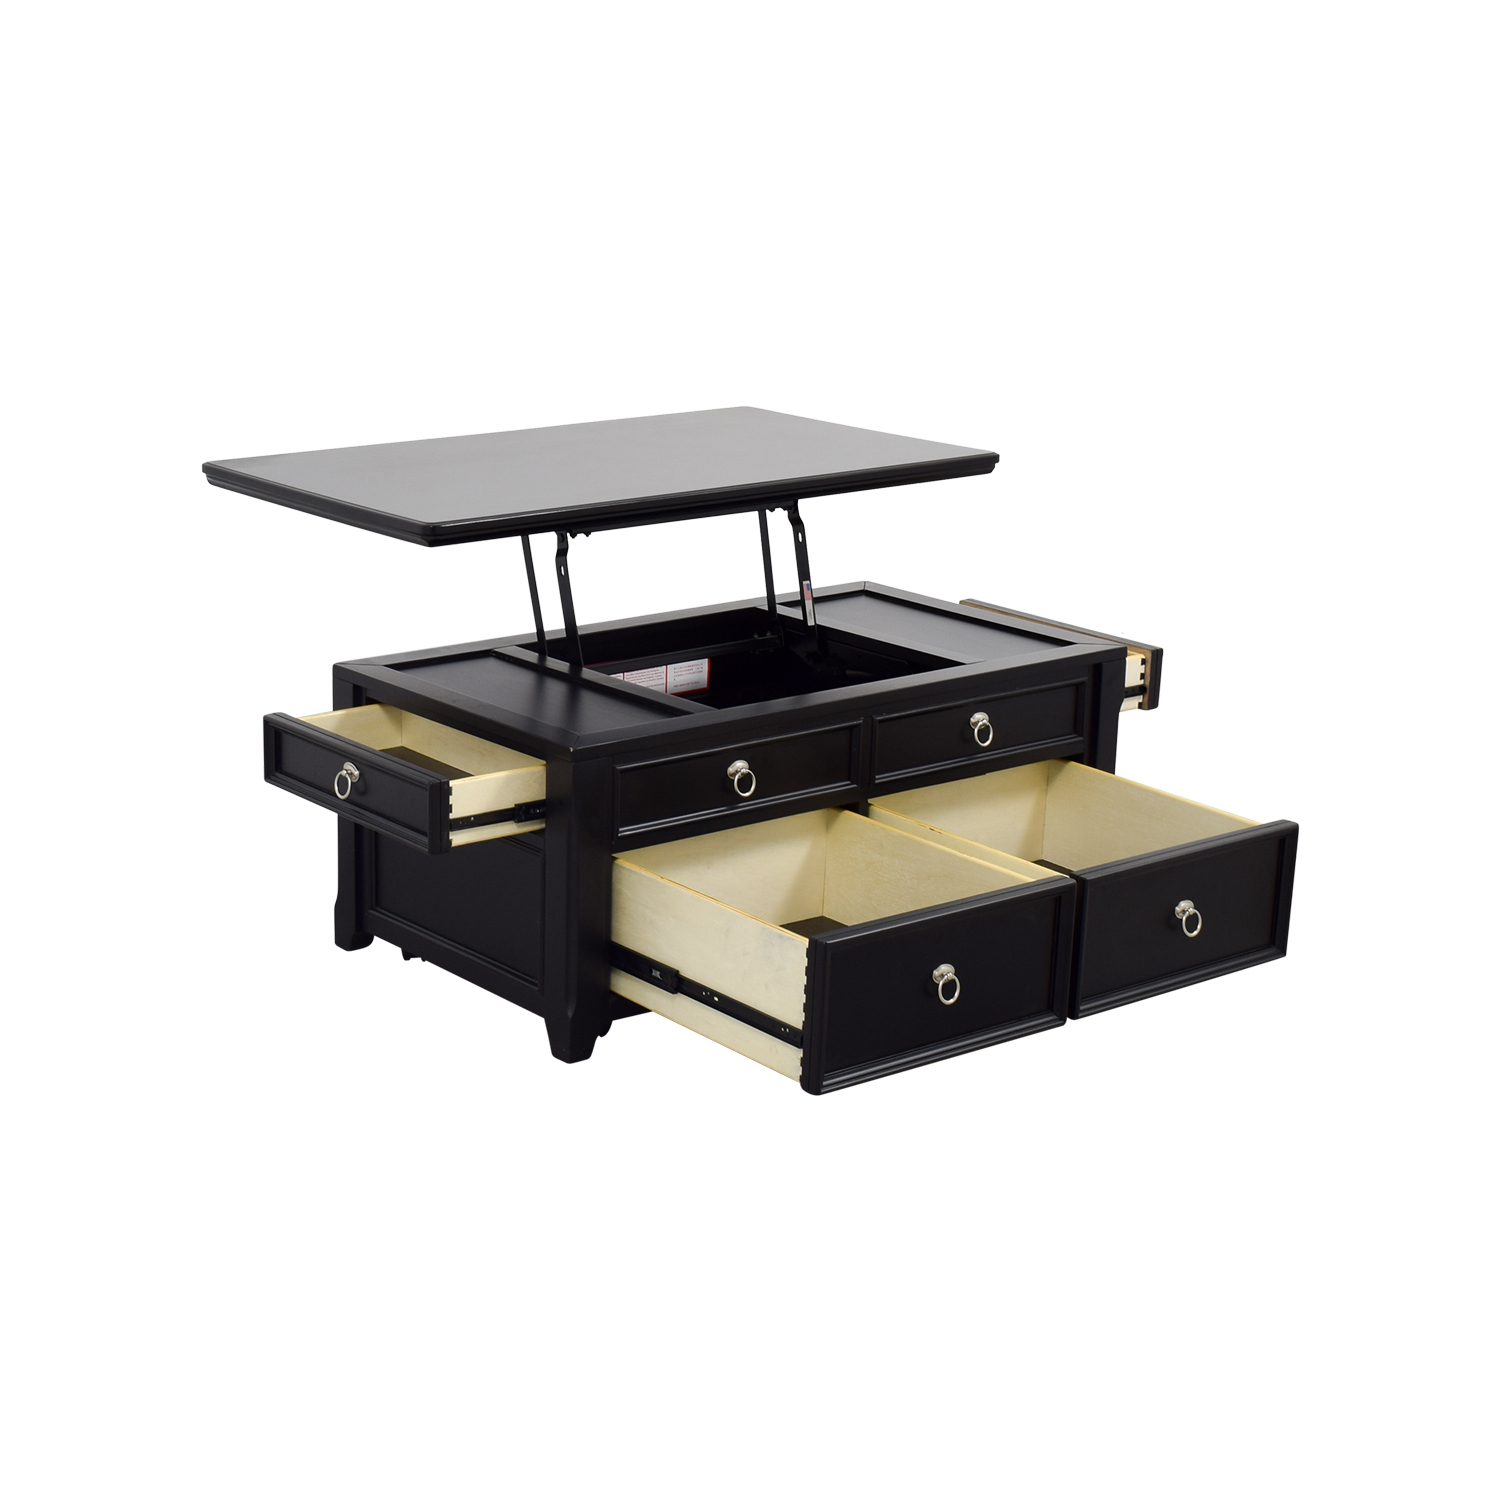 Top Lift Coffee Table 61 Off Ashley Furniture Ashley Furniture Black Lift Top